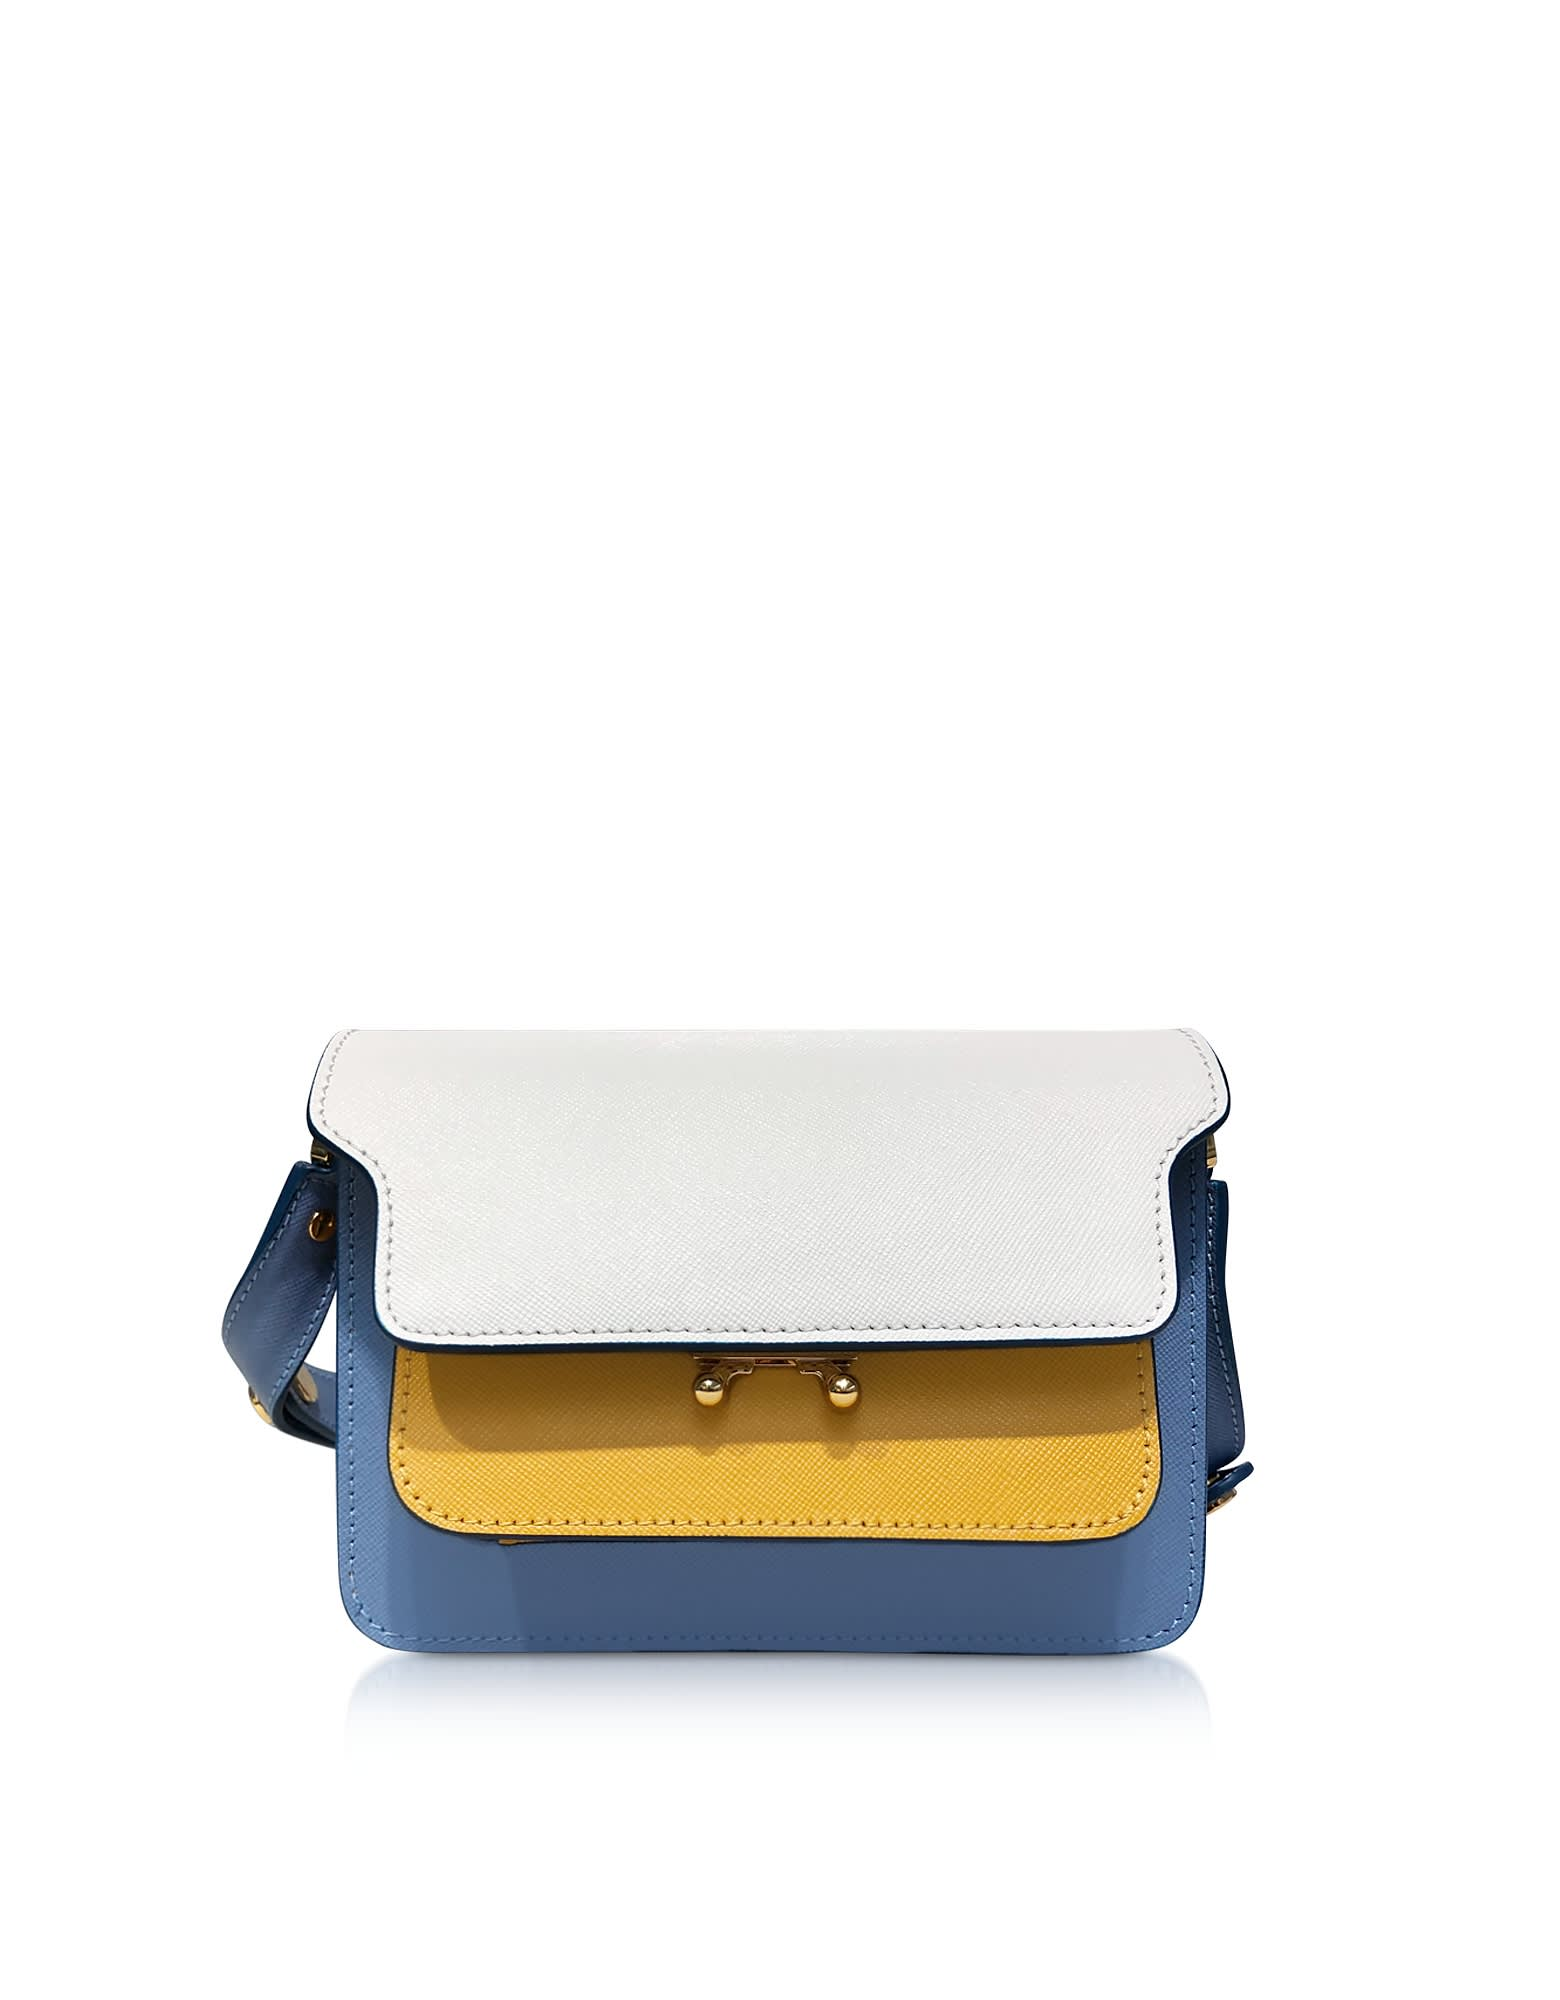 Marni Pants COLOR BLOCK SAFFIANO LEATHER MICRO TRUNK BAG